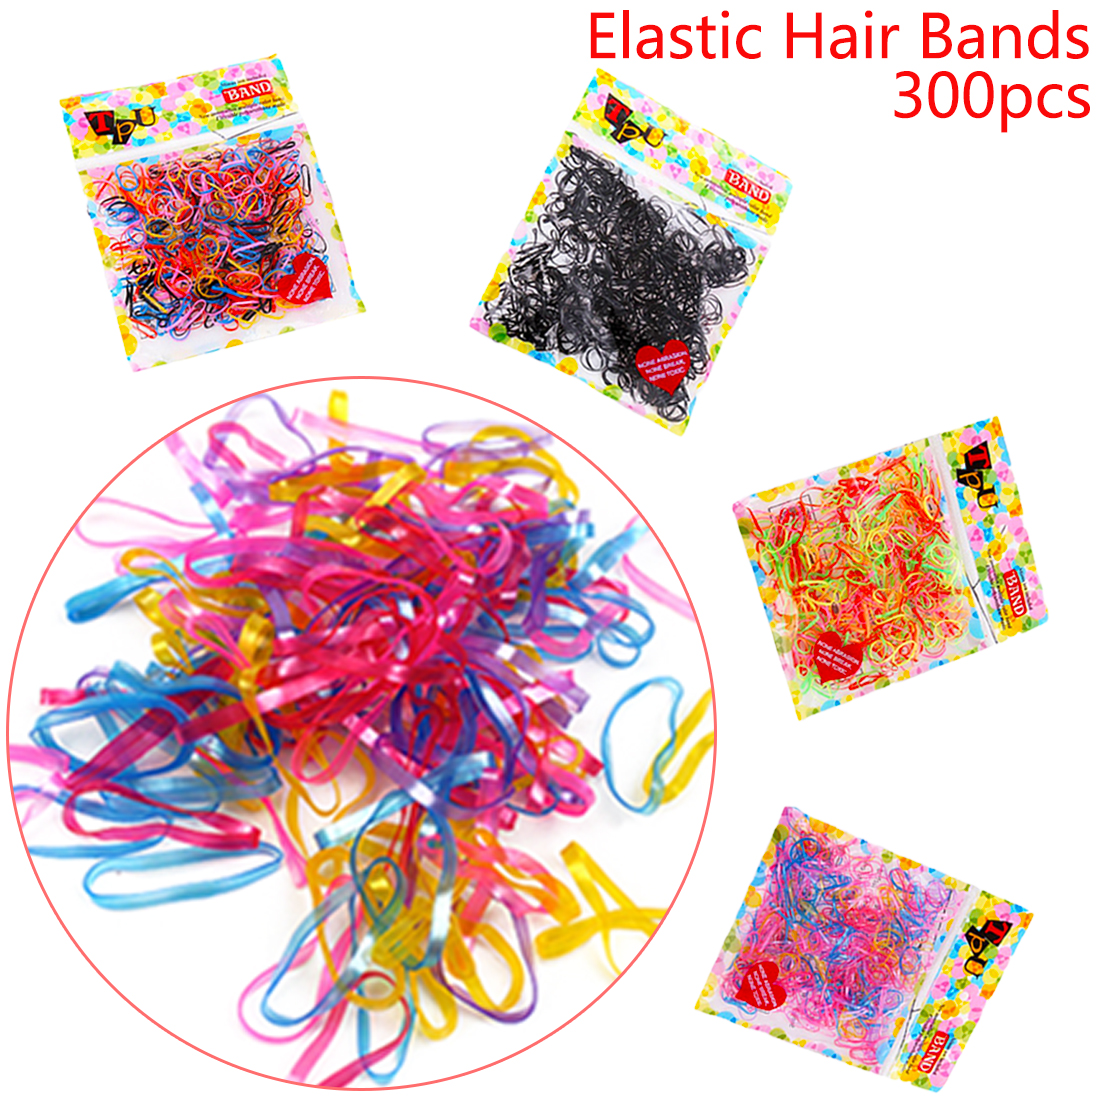 About 300pcs/lot Colorful Elastic Hair Band Holders Headwear Tie Gum Ponytail Holder Braiding Disposable Rubber Hair Accessories